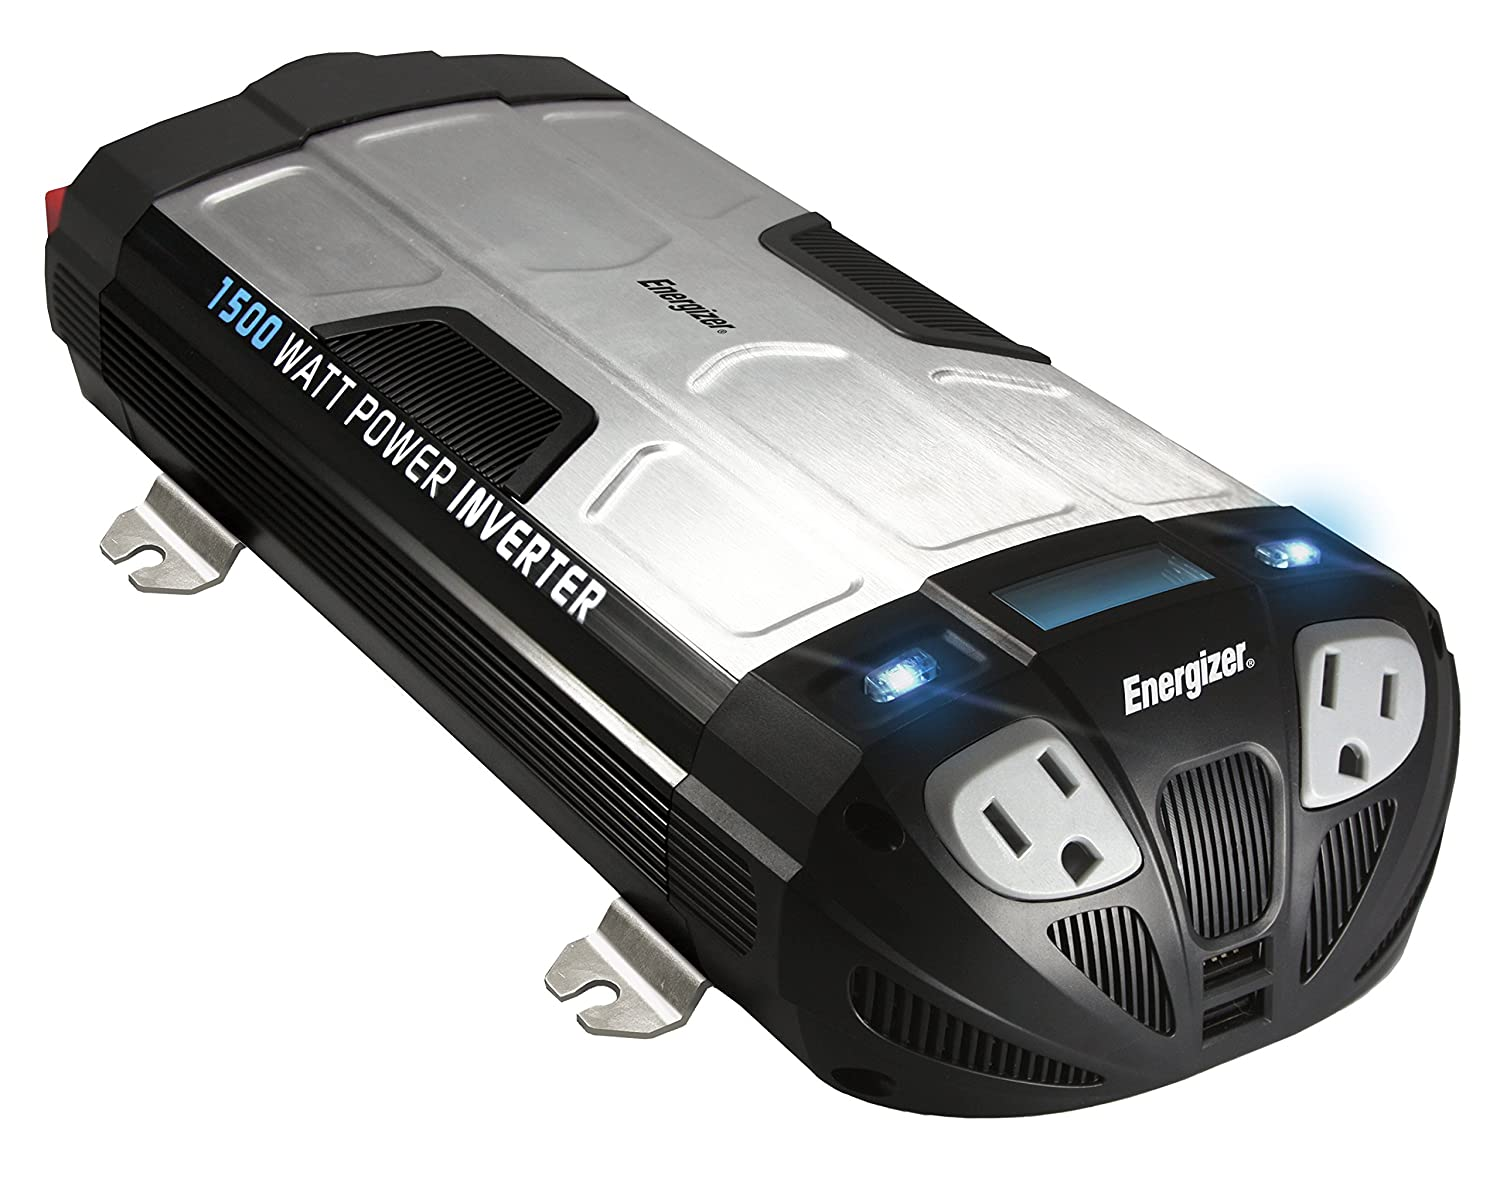 3. Energizer 1500 Watt Power Inverter